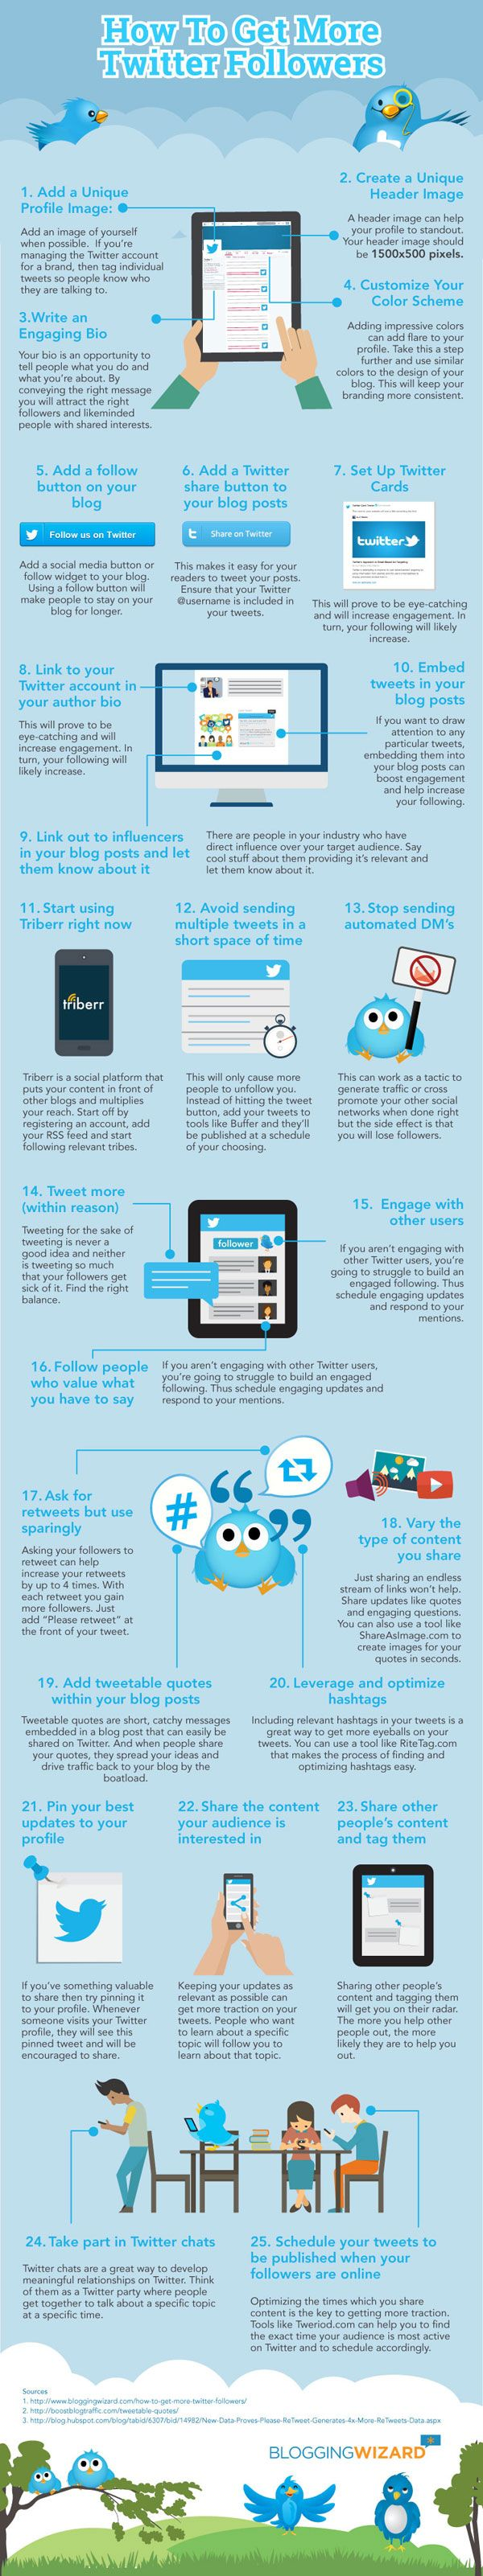 25 Smart Ways To Grow Your Twitter Following Fast